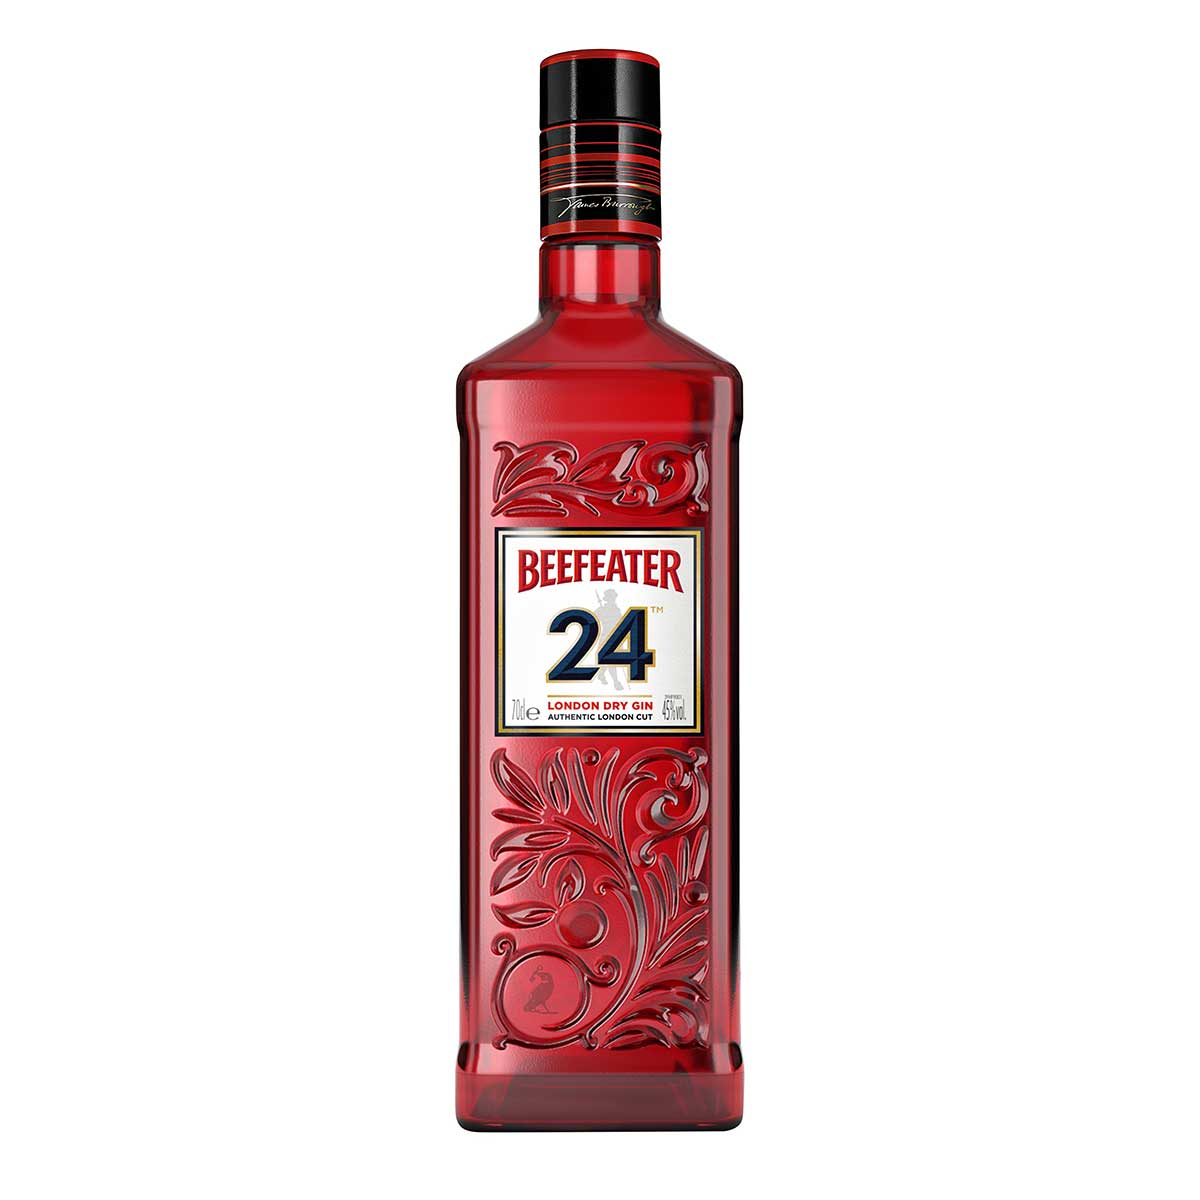 Beefeater 24 Gin bottle